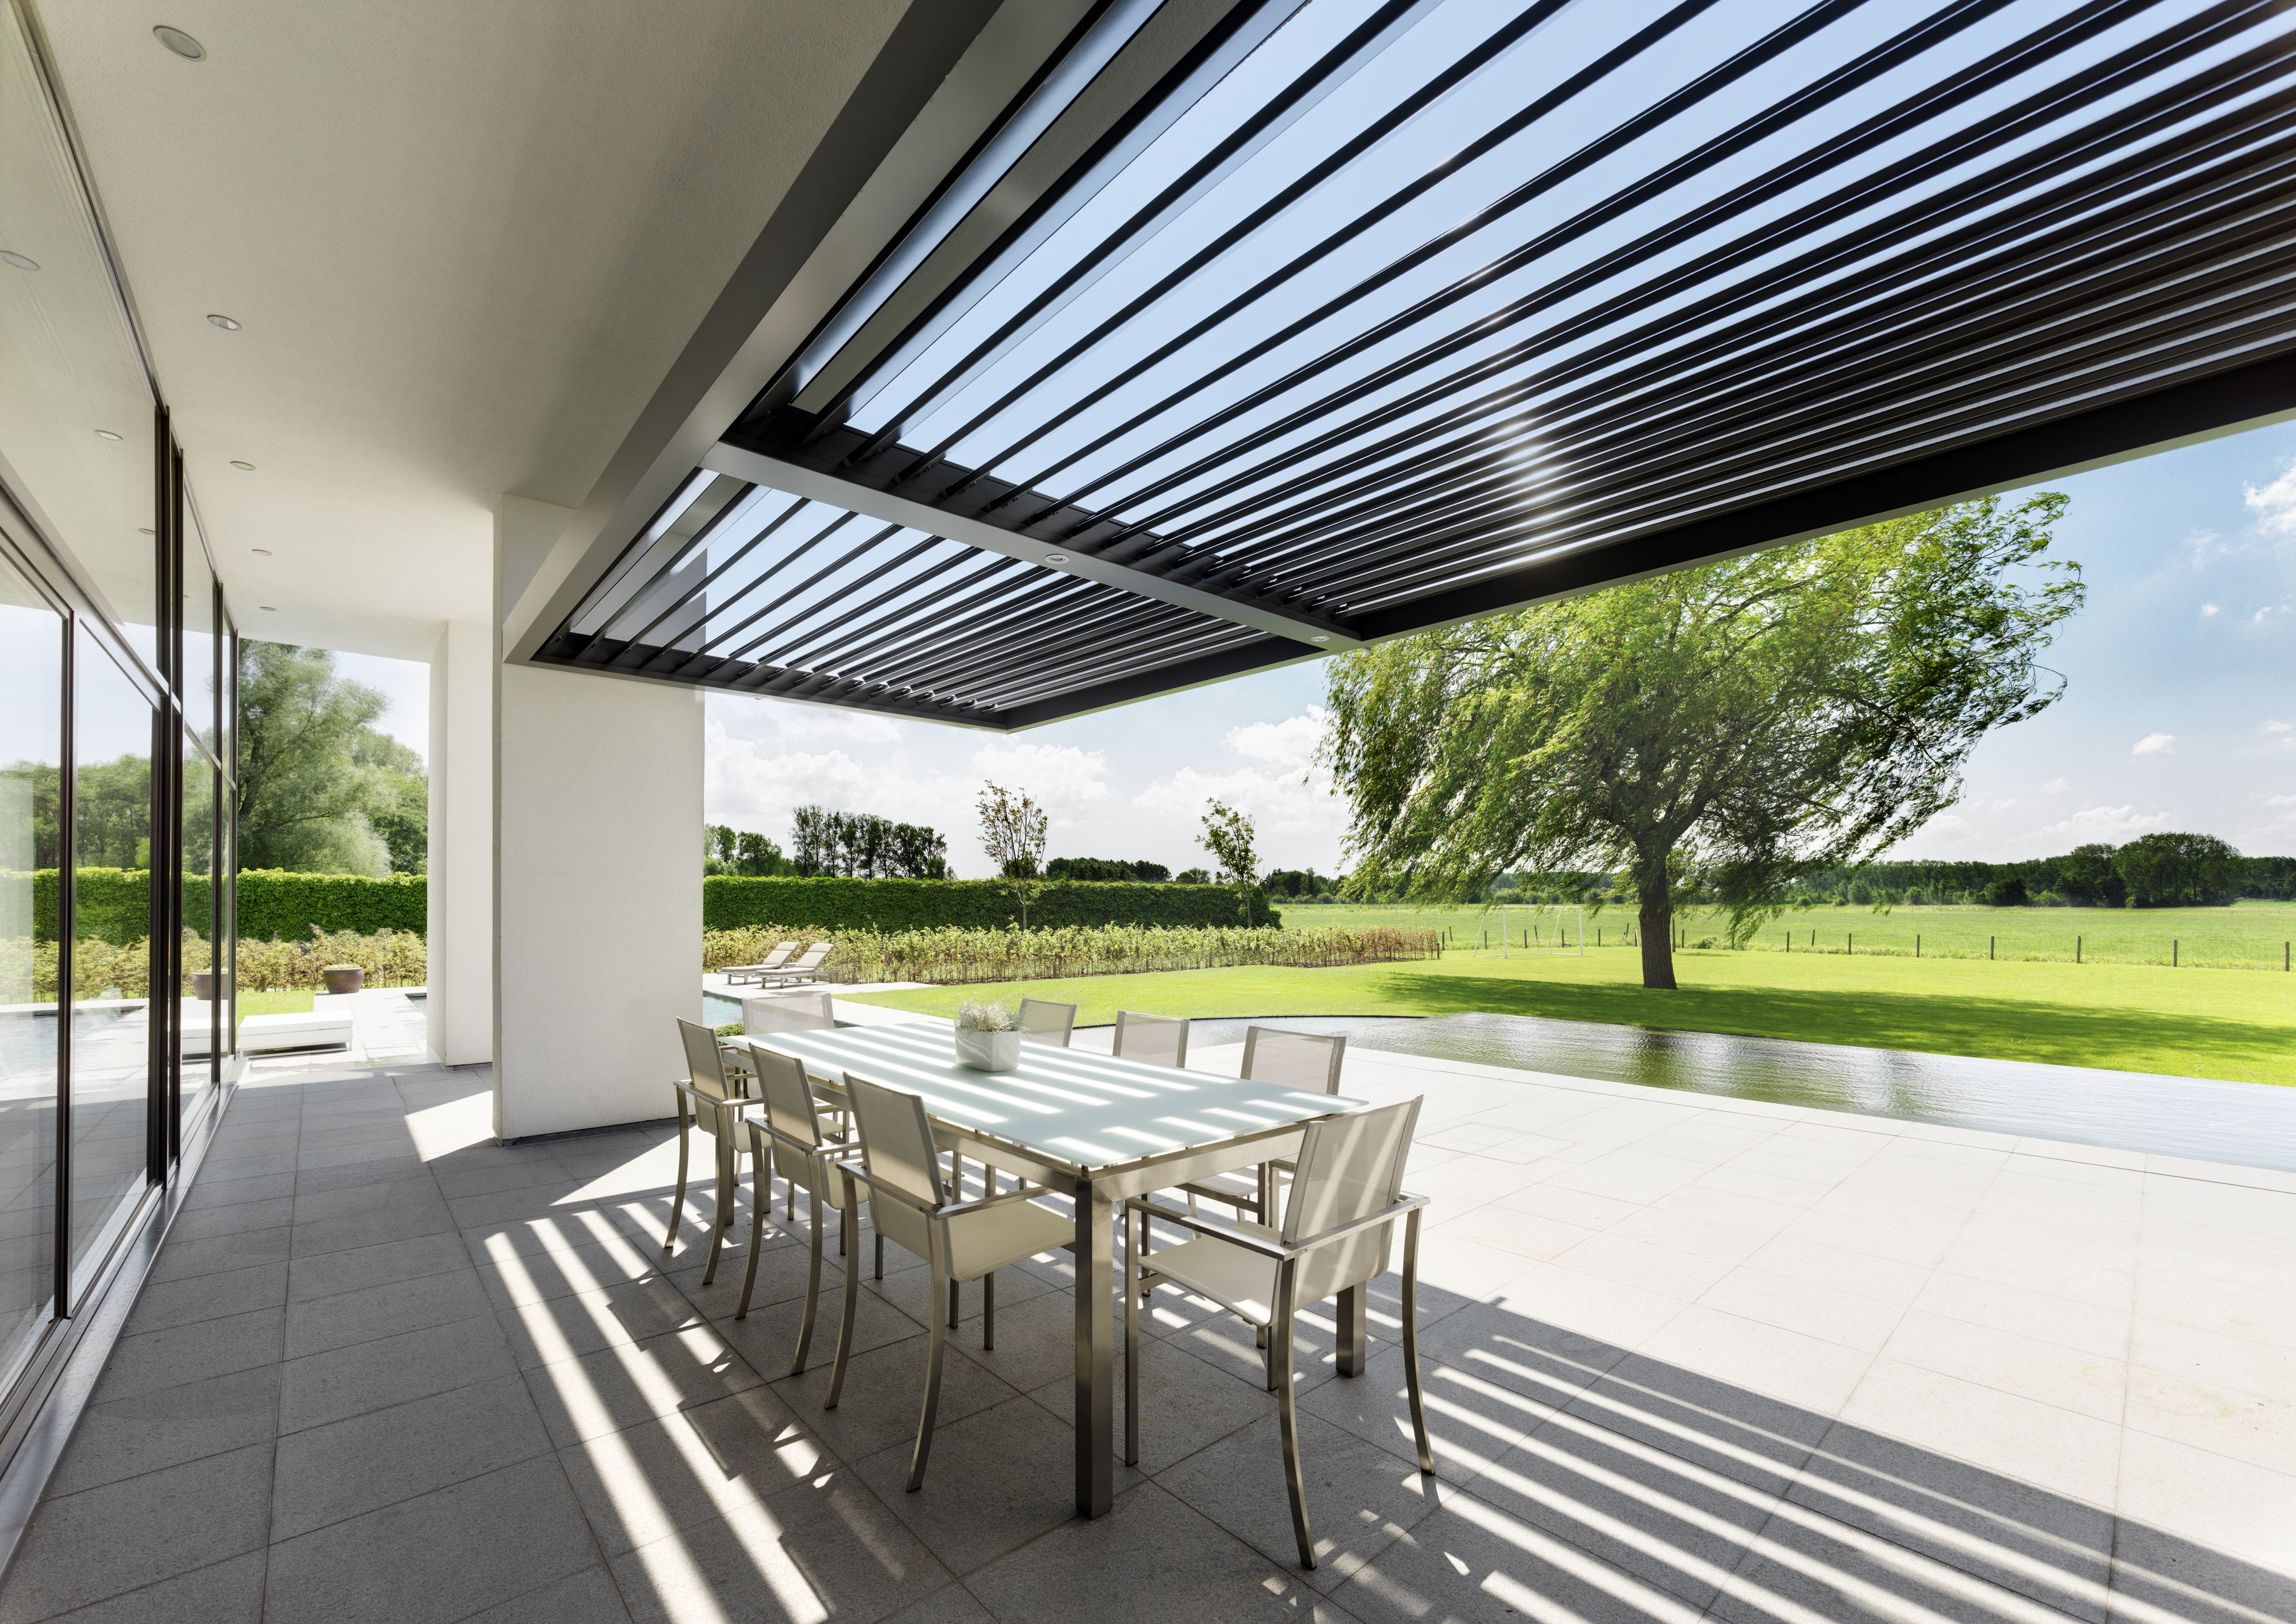 Umbris Louvre Roof Perfect For Shading Outdoor Living Spaces Call Umbris To Find Out More 01494 722 880 Terrasoverkapping Patio Buitenleven